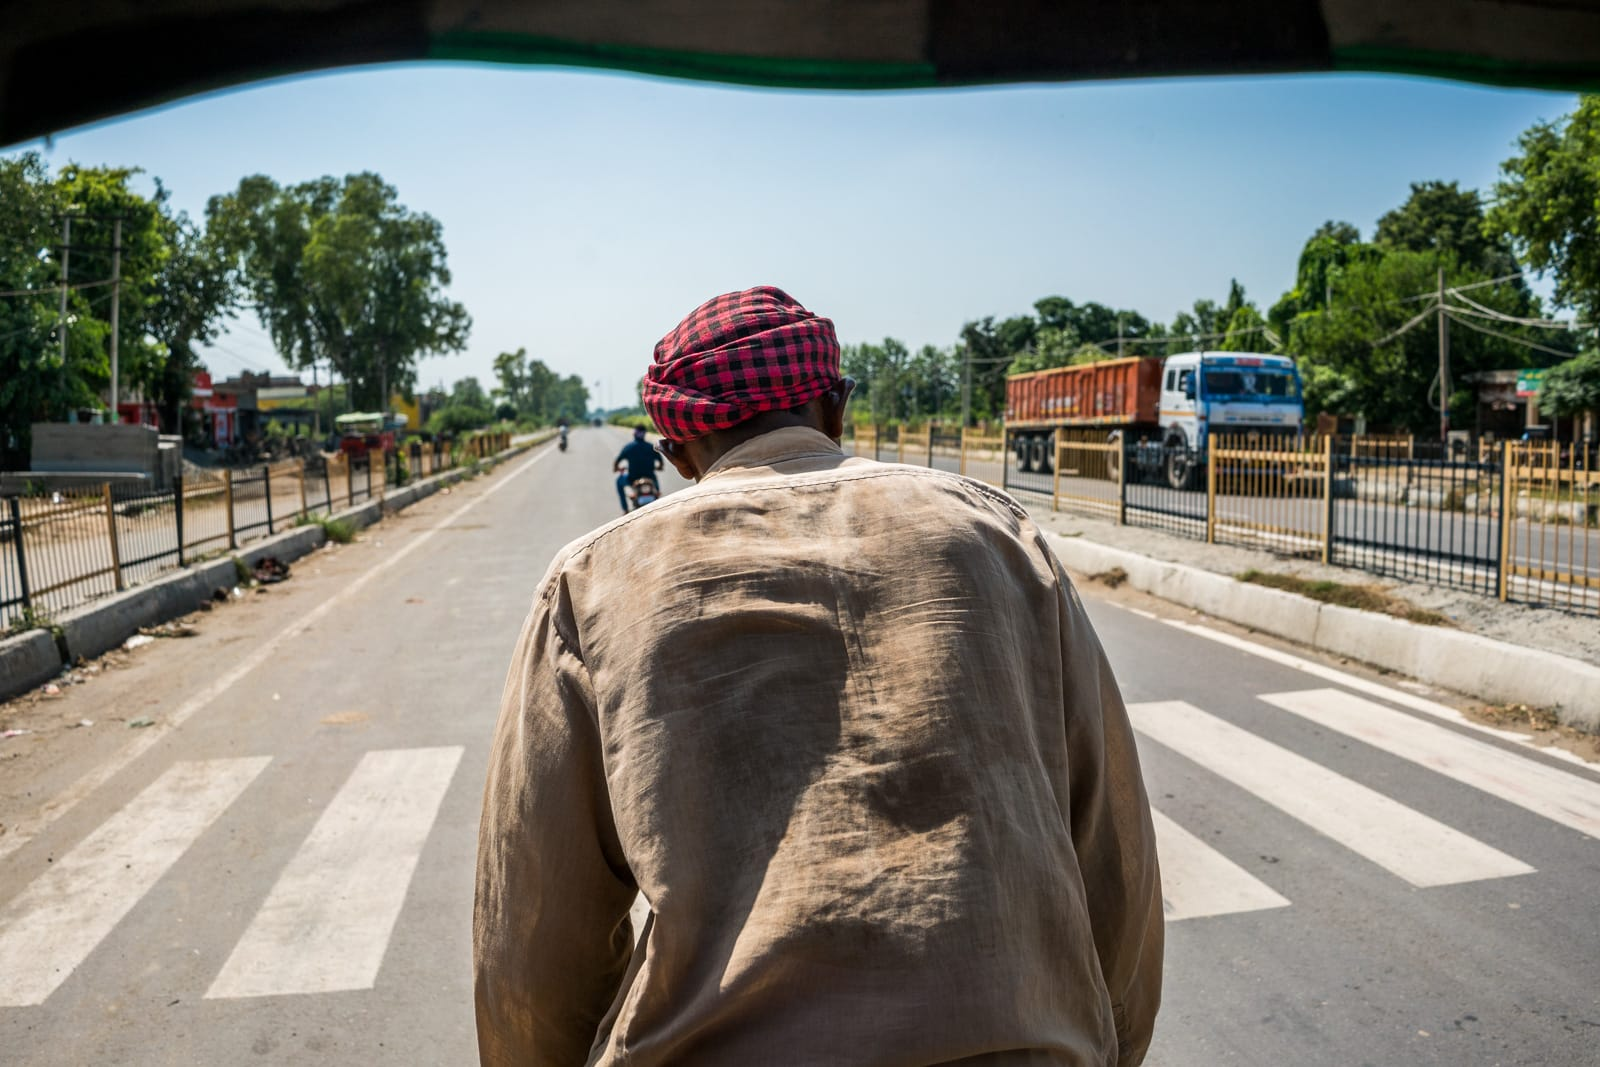 Crossing overland at the Wagah border between India and Pakistan - Cycle rickshaw to the border - Lost With Purpose travel blog